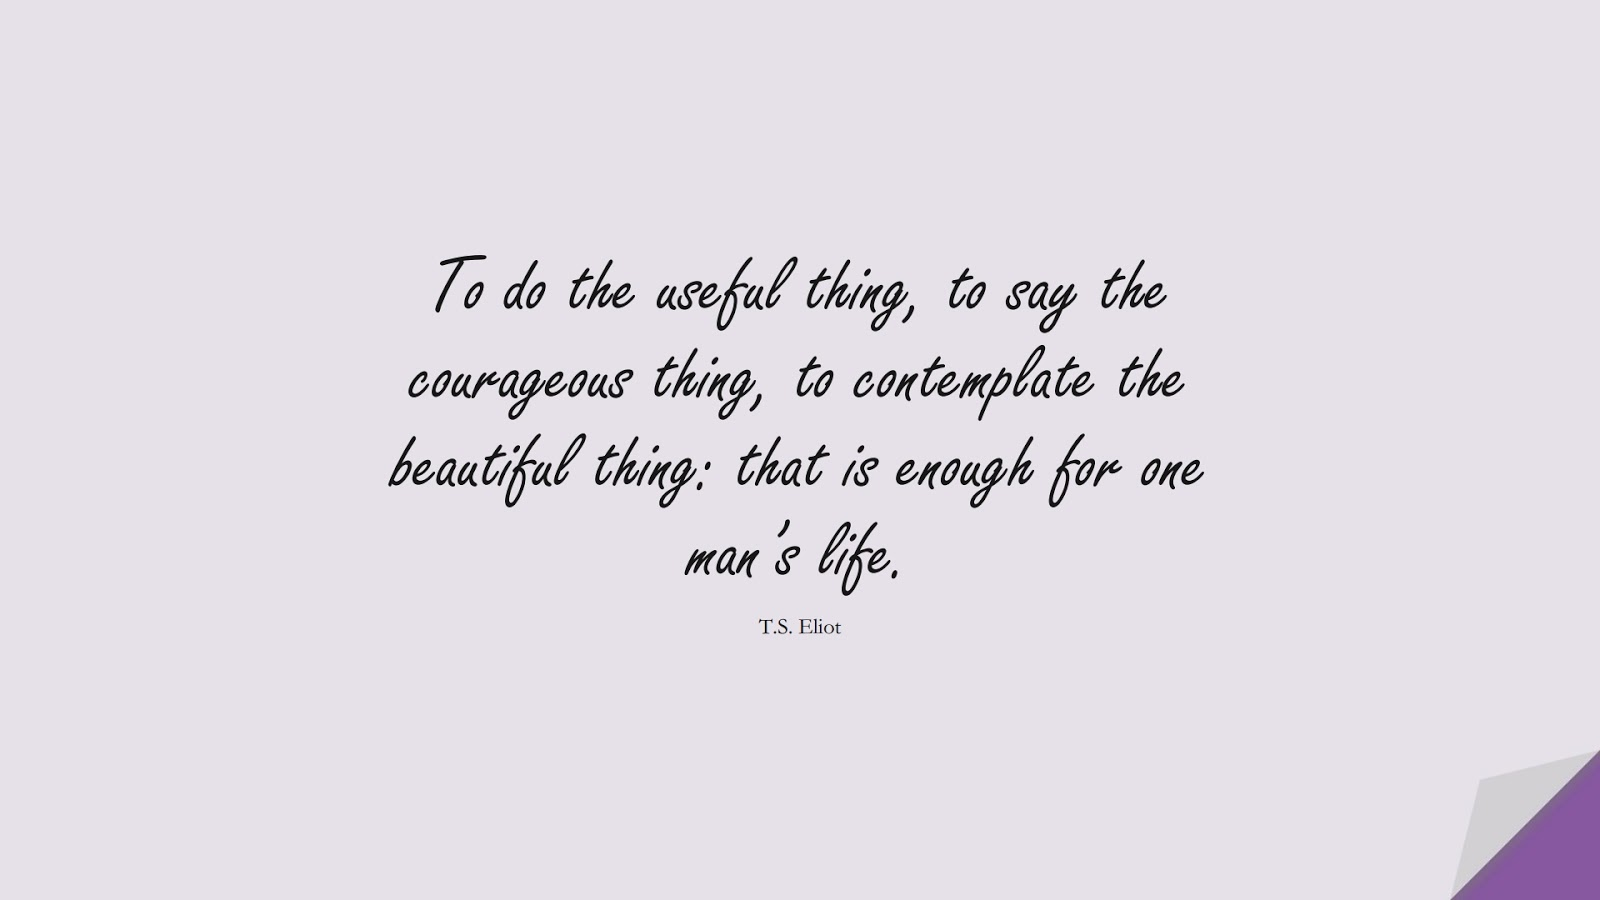 To do the useful thing, to say the courageous thing, to contemplate the beautiful thing: that is enough for one man's life. (T.S. Eliot);  #LifeQuotes